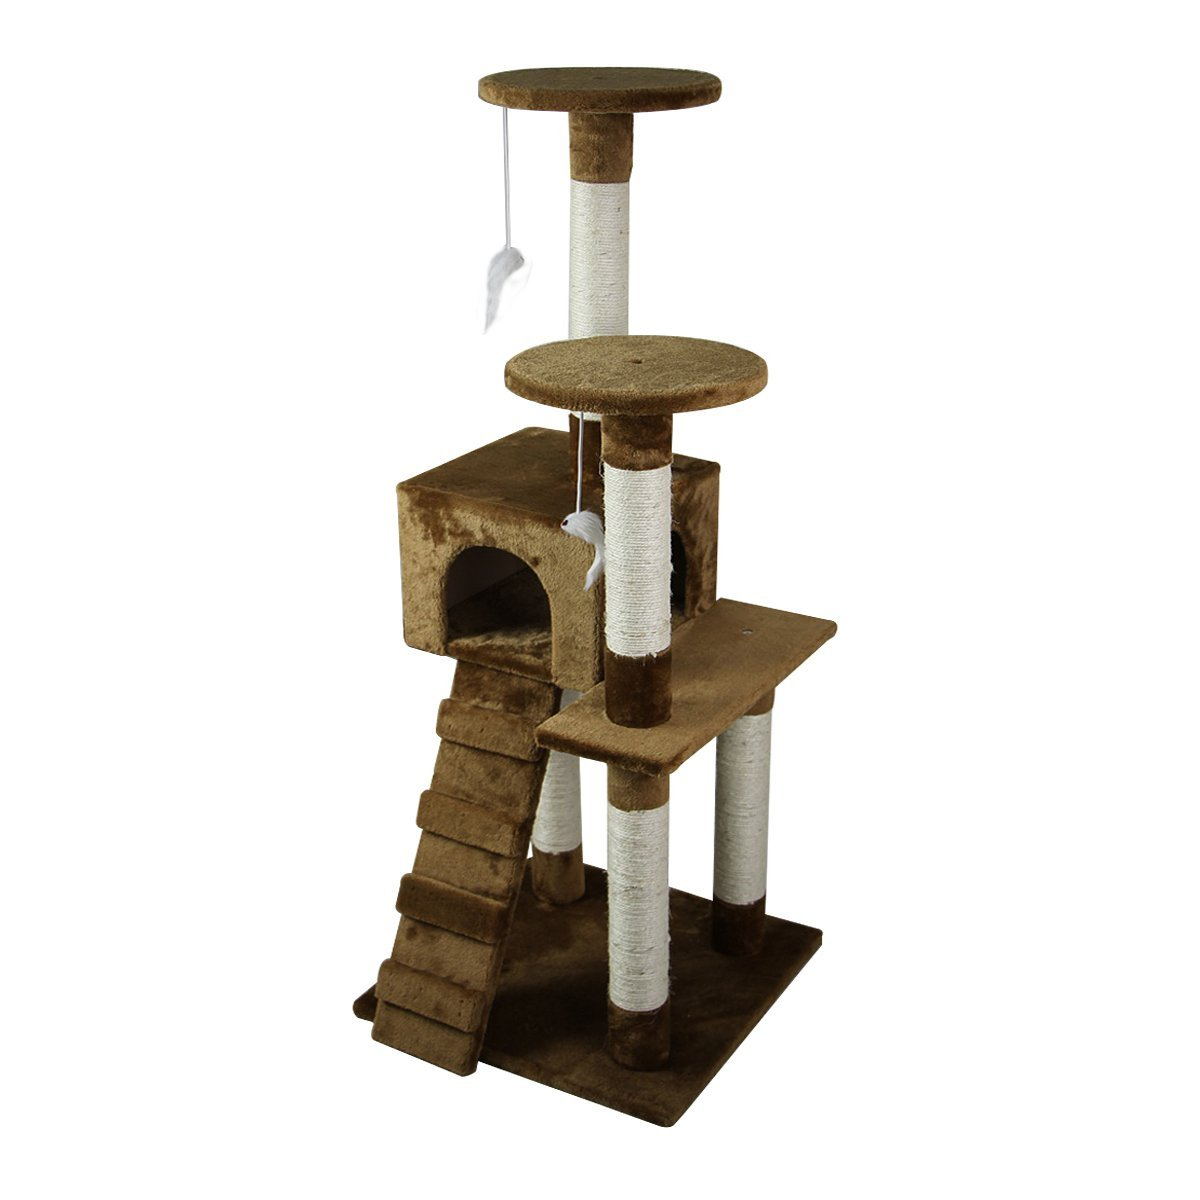 52-039-039-Cat-Tree-Multi-Level-Tower-Kitten-Condo-House-Activity-Center-Pet-Furniture thumbnail 14